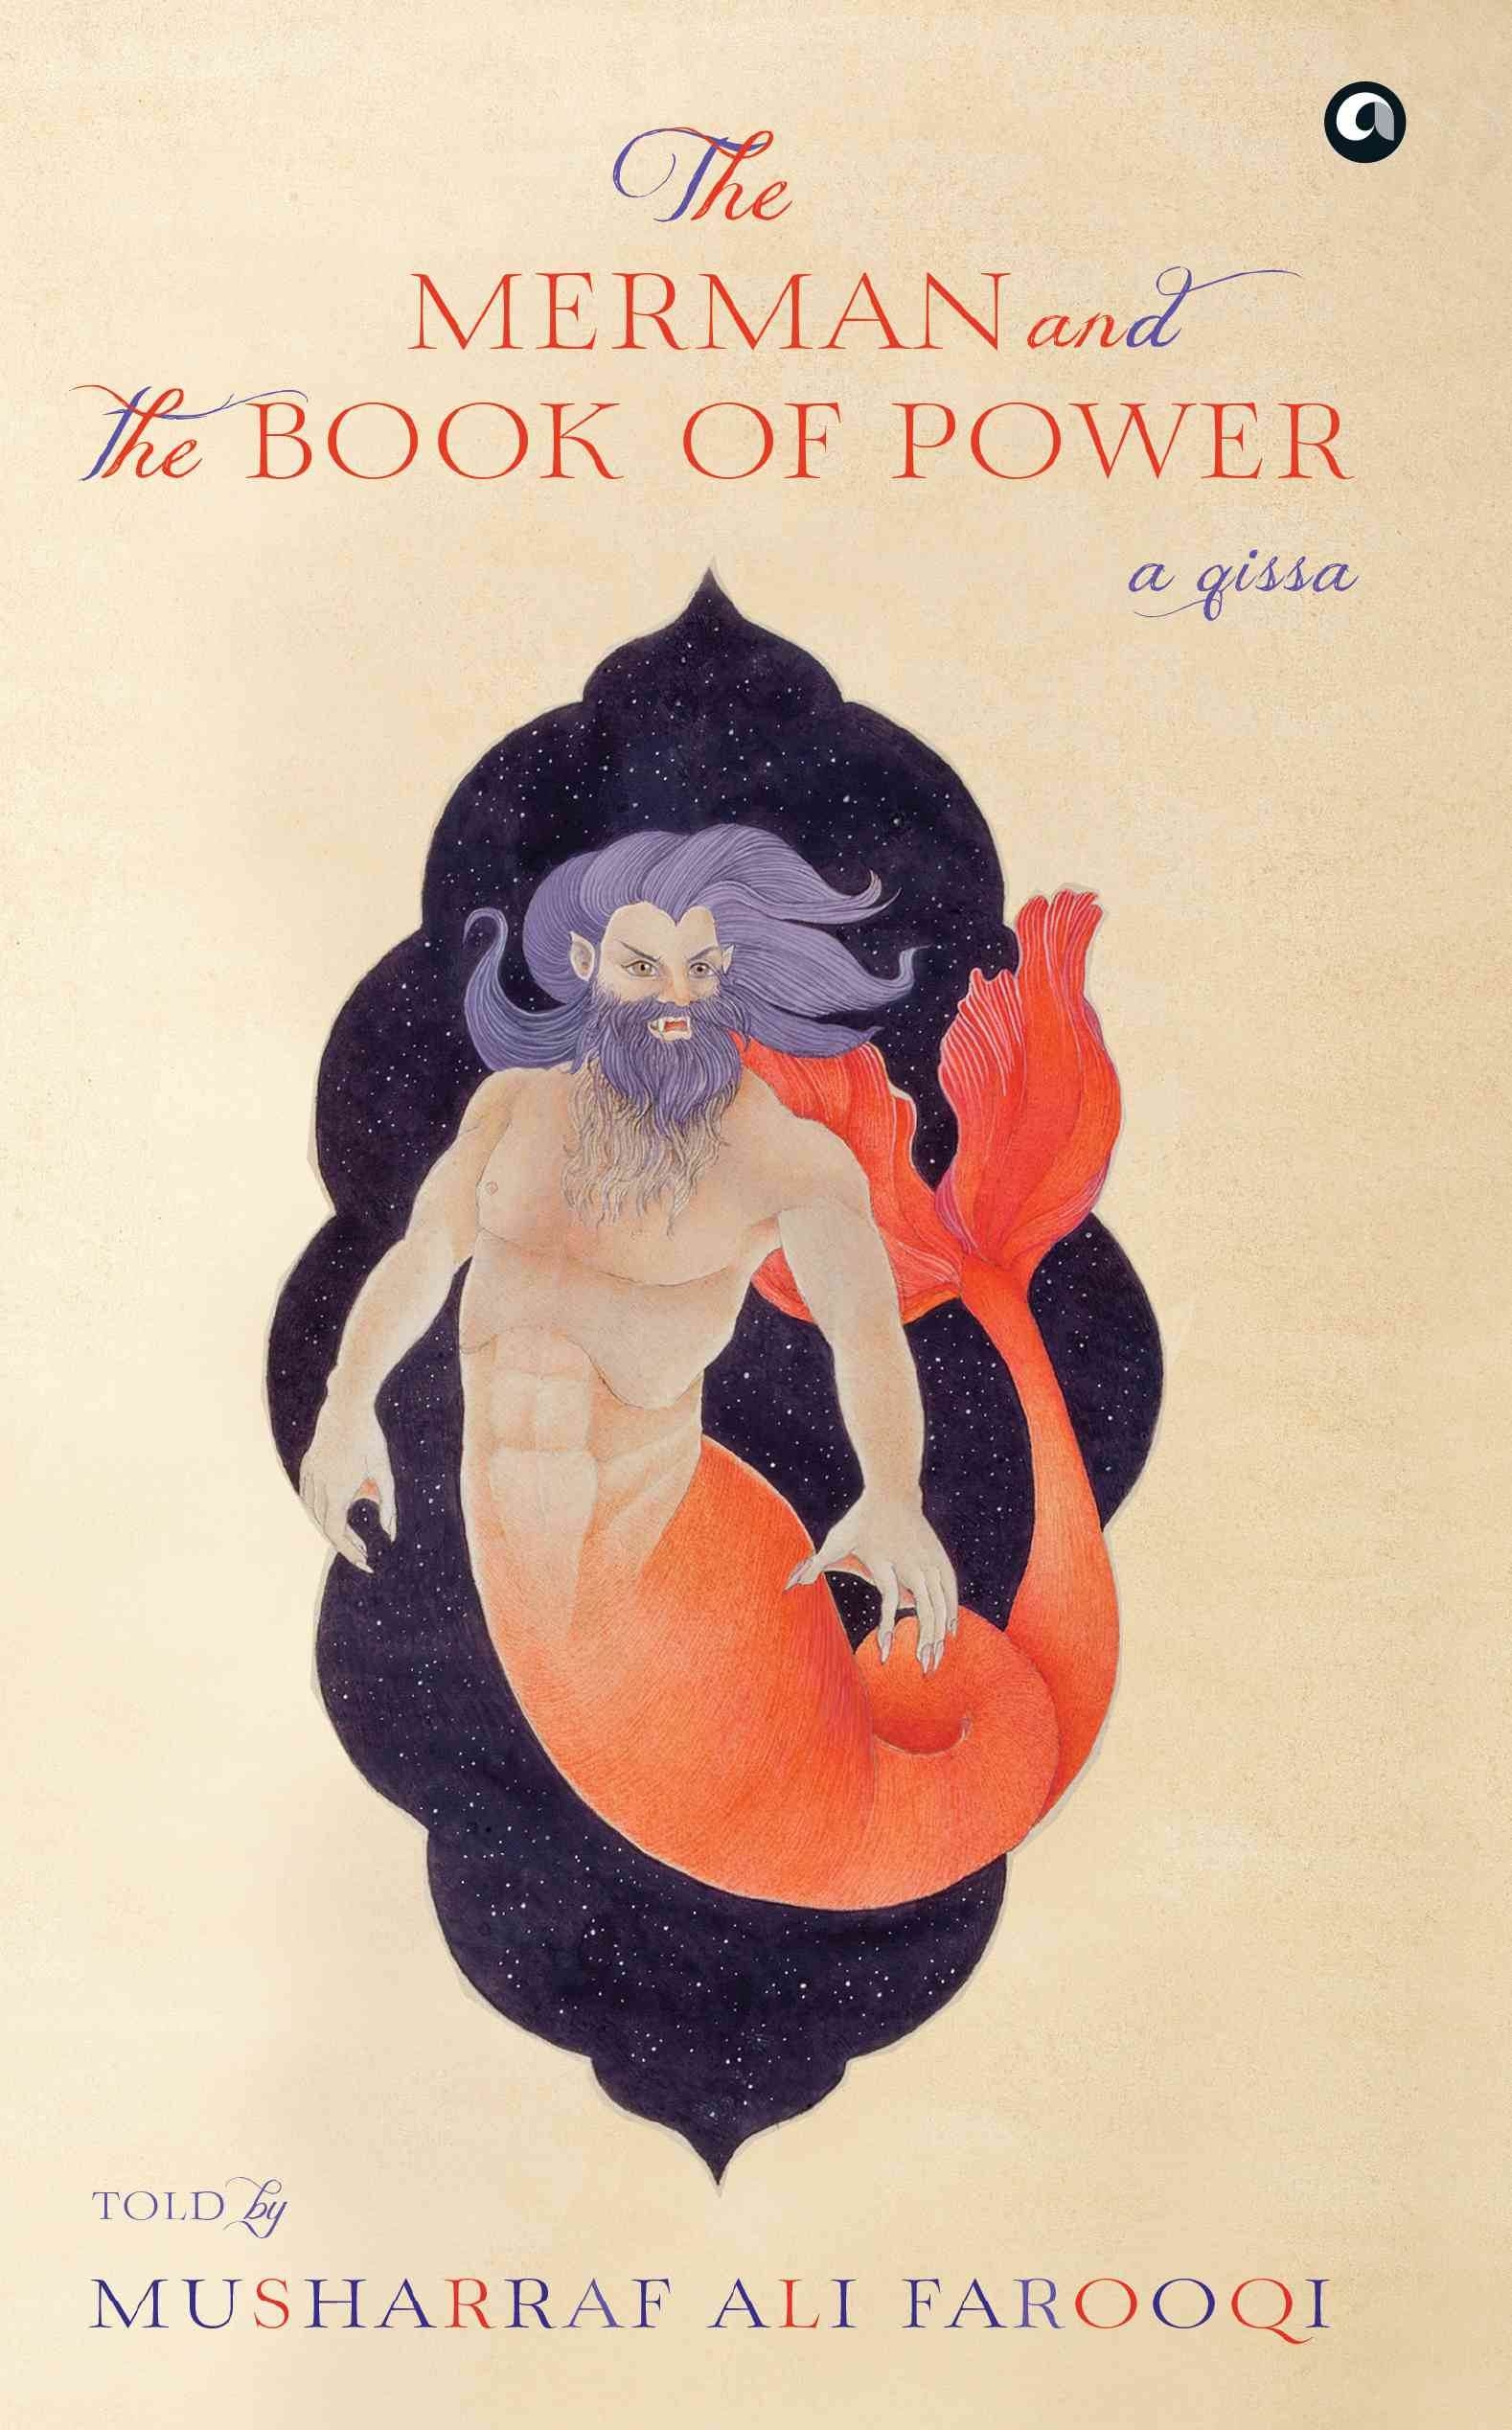 The Merman and the Book of Power